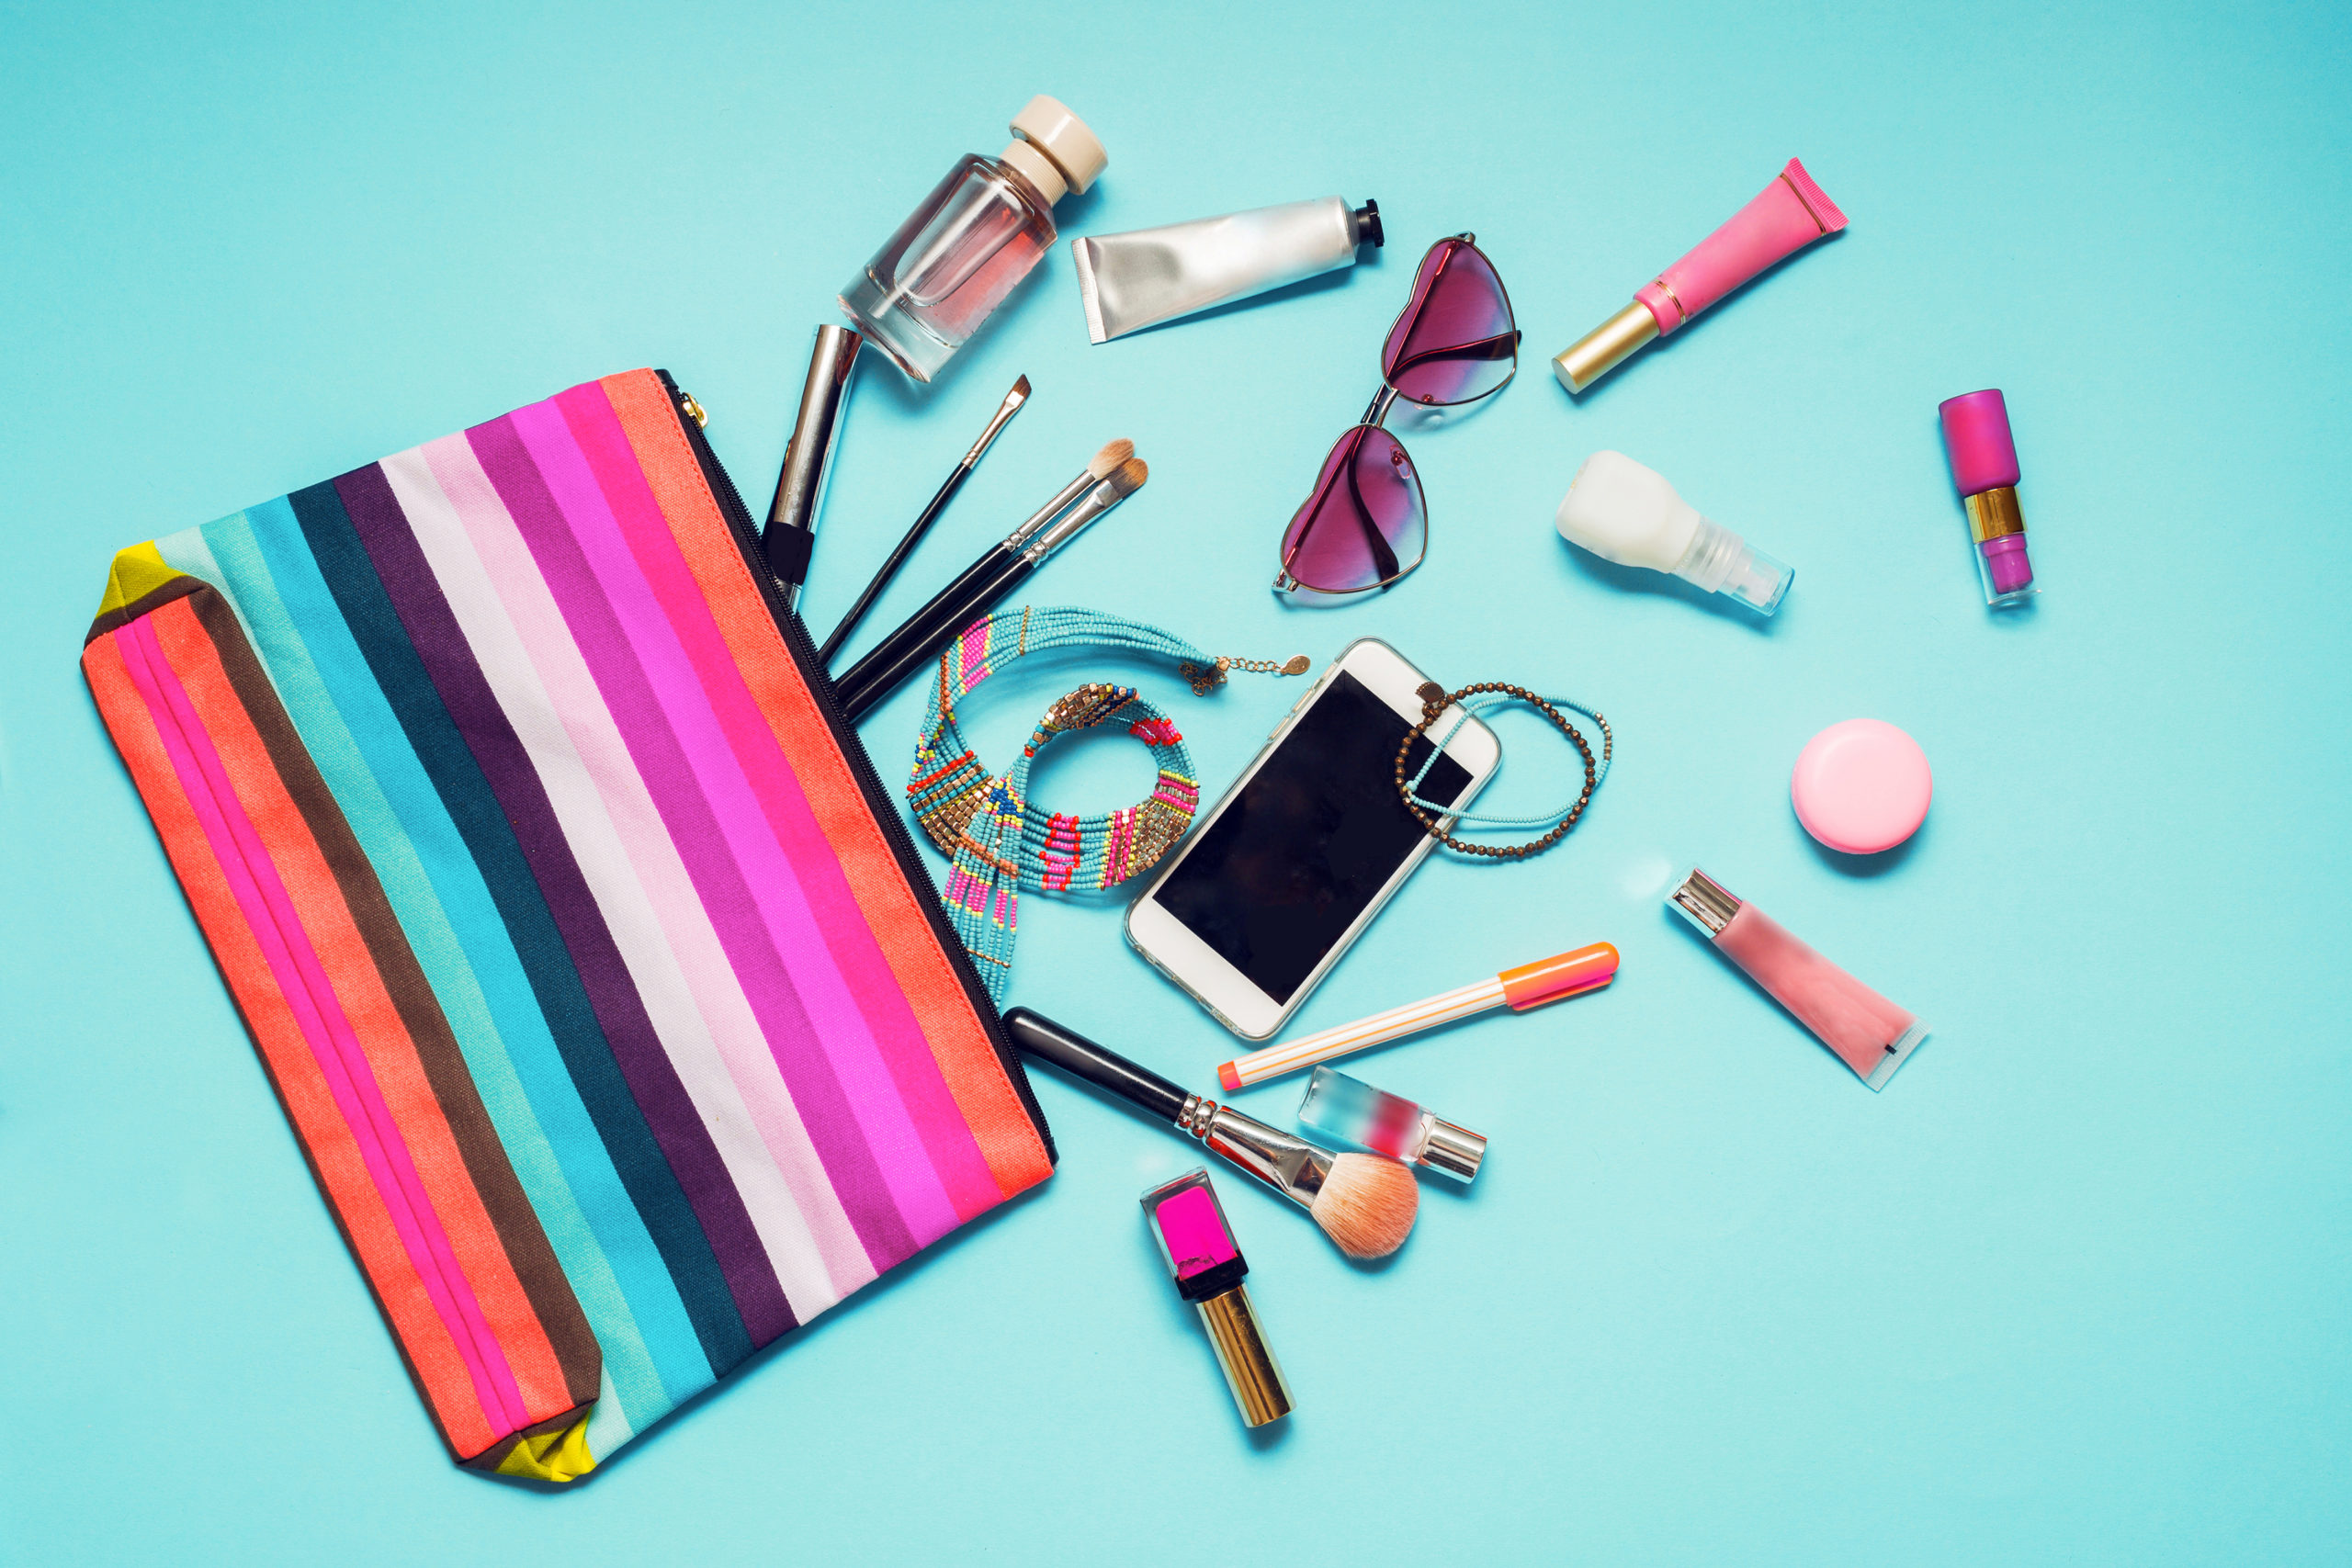 You can tell a lot about a woman from what's in her purse!